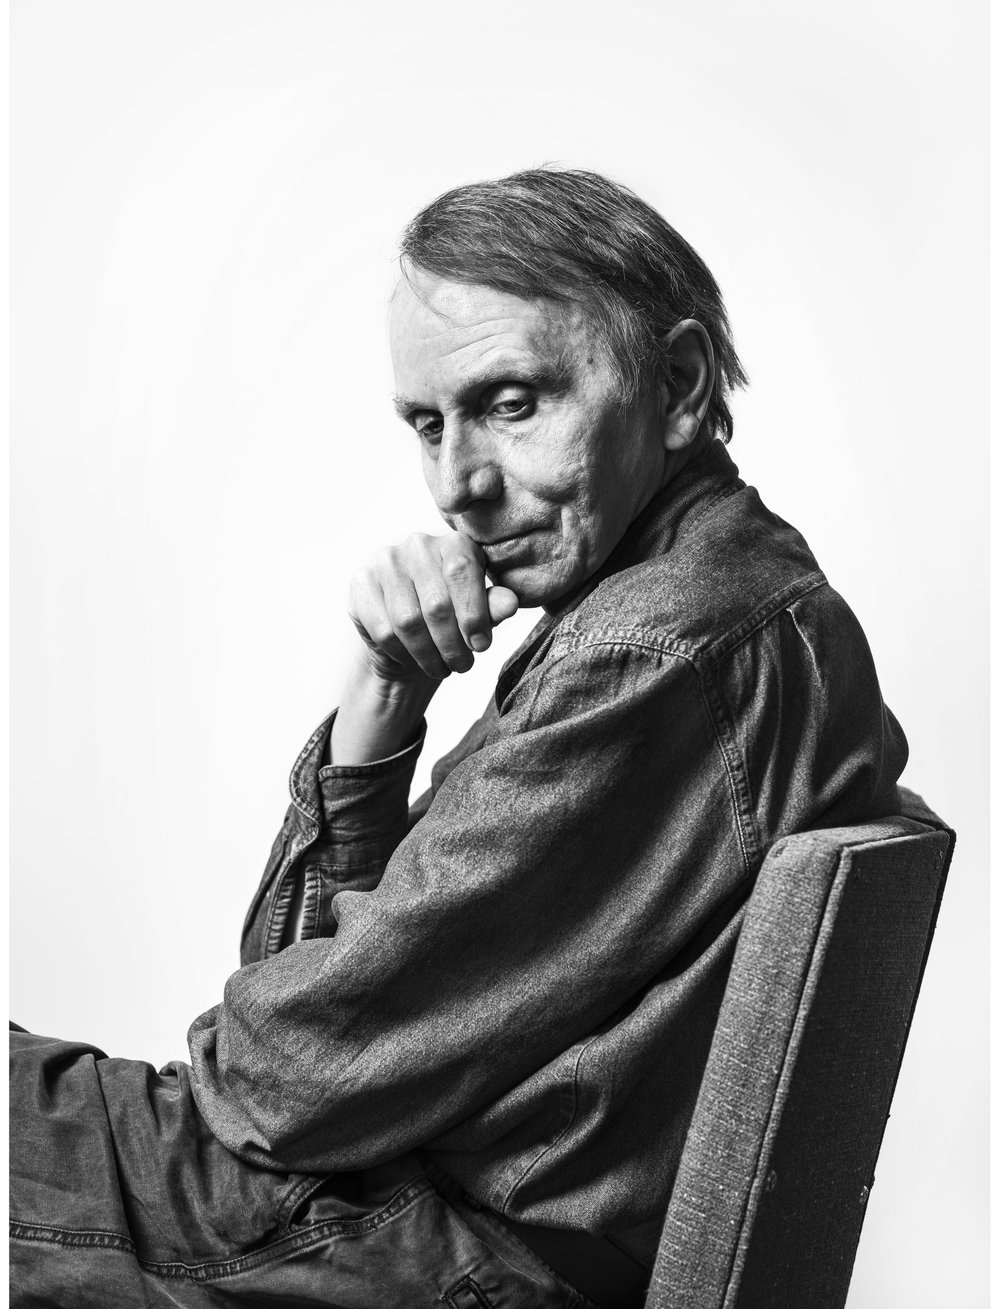 MICHEL HOUELLEBECQ | WRITER